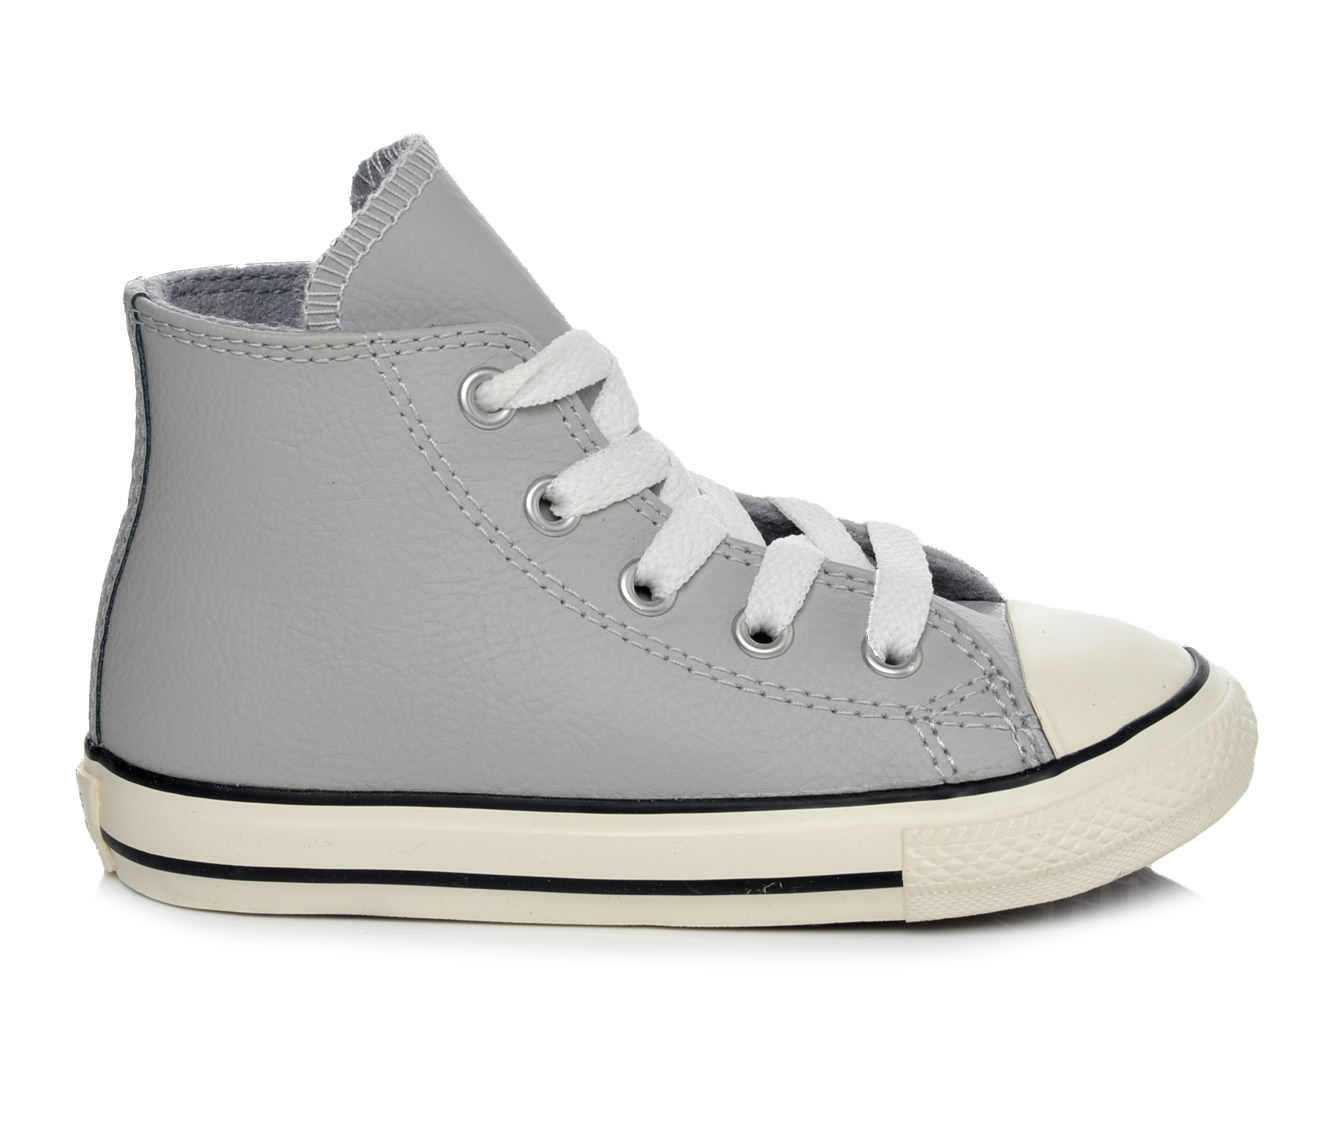 Girls' Converse Infant Chuck Taylor All Star Hi Leather Sneakers (Grey)